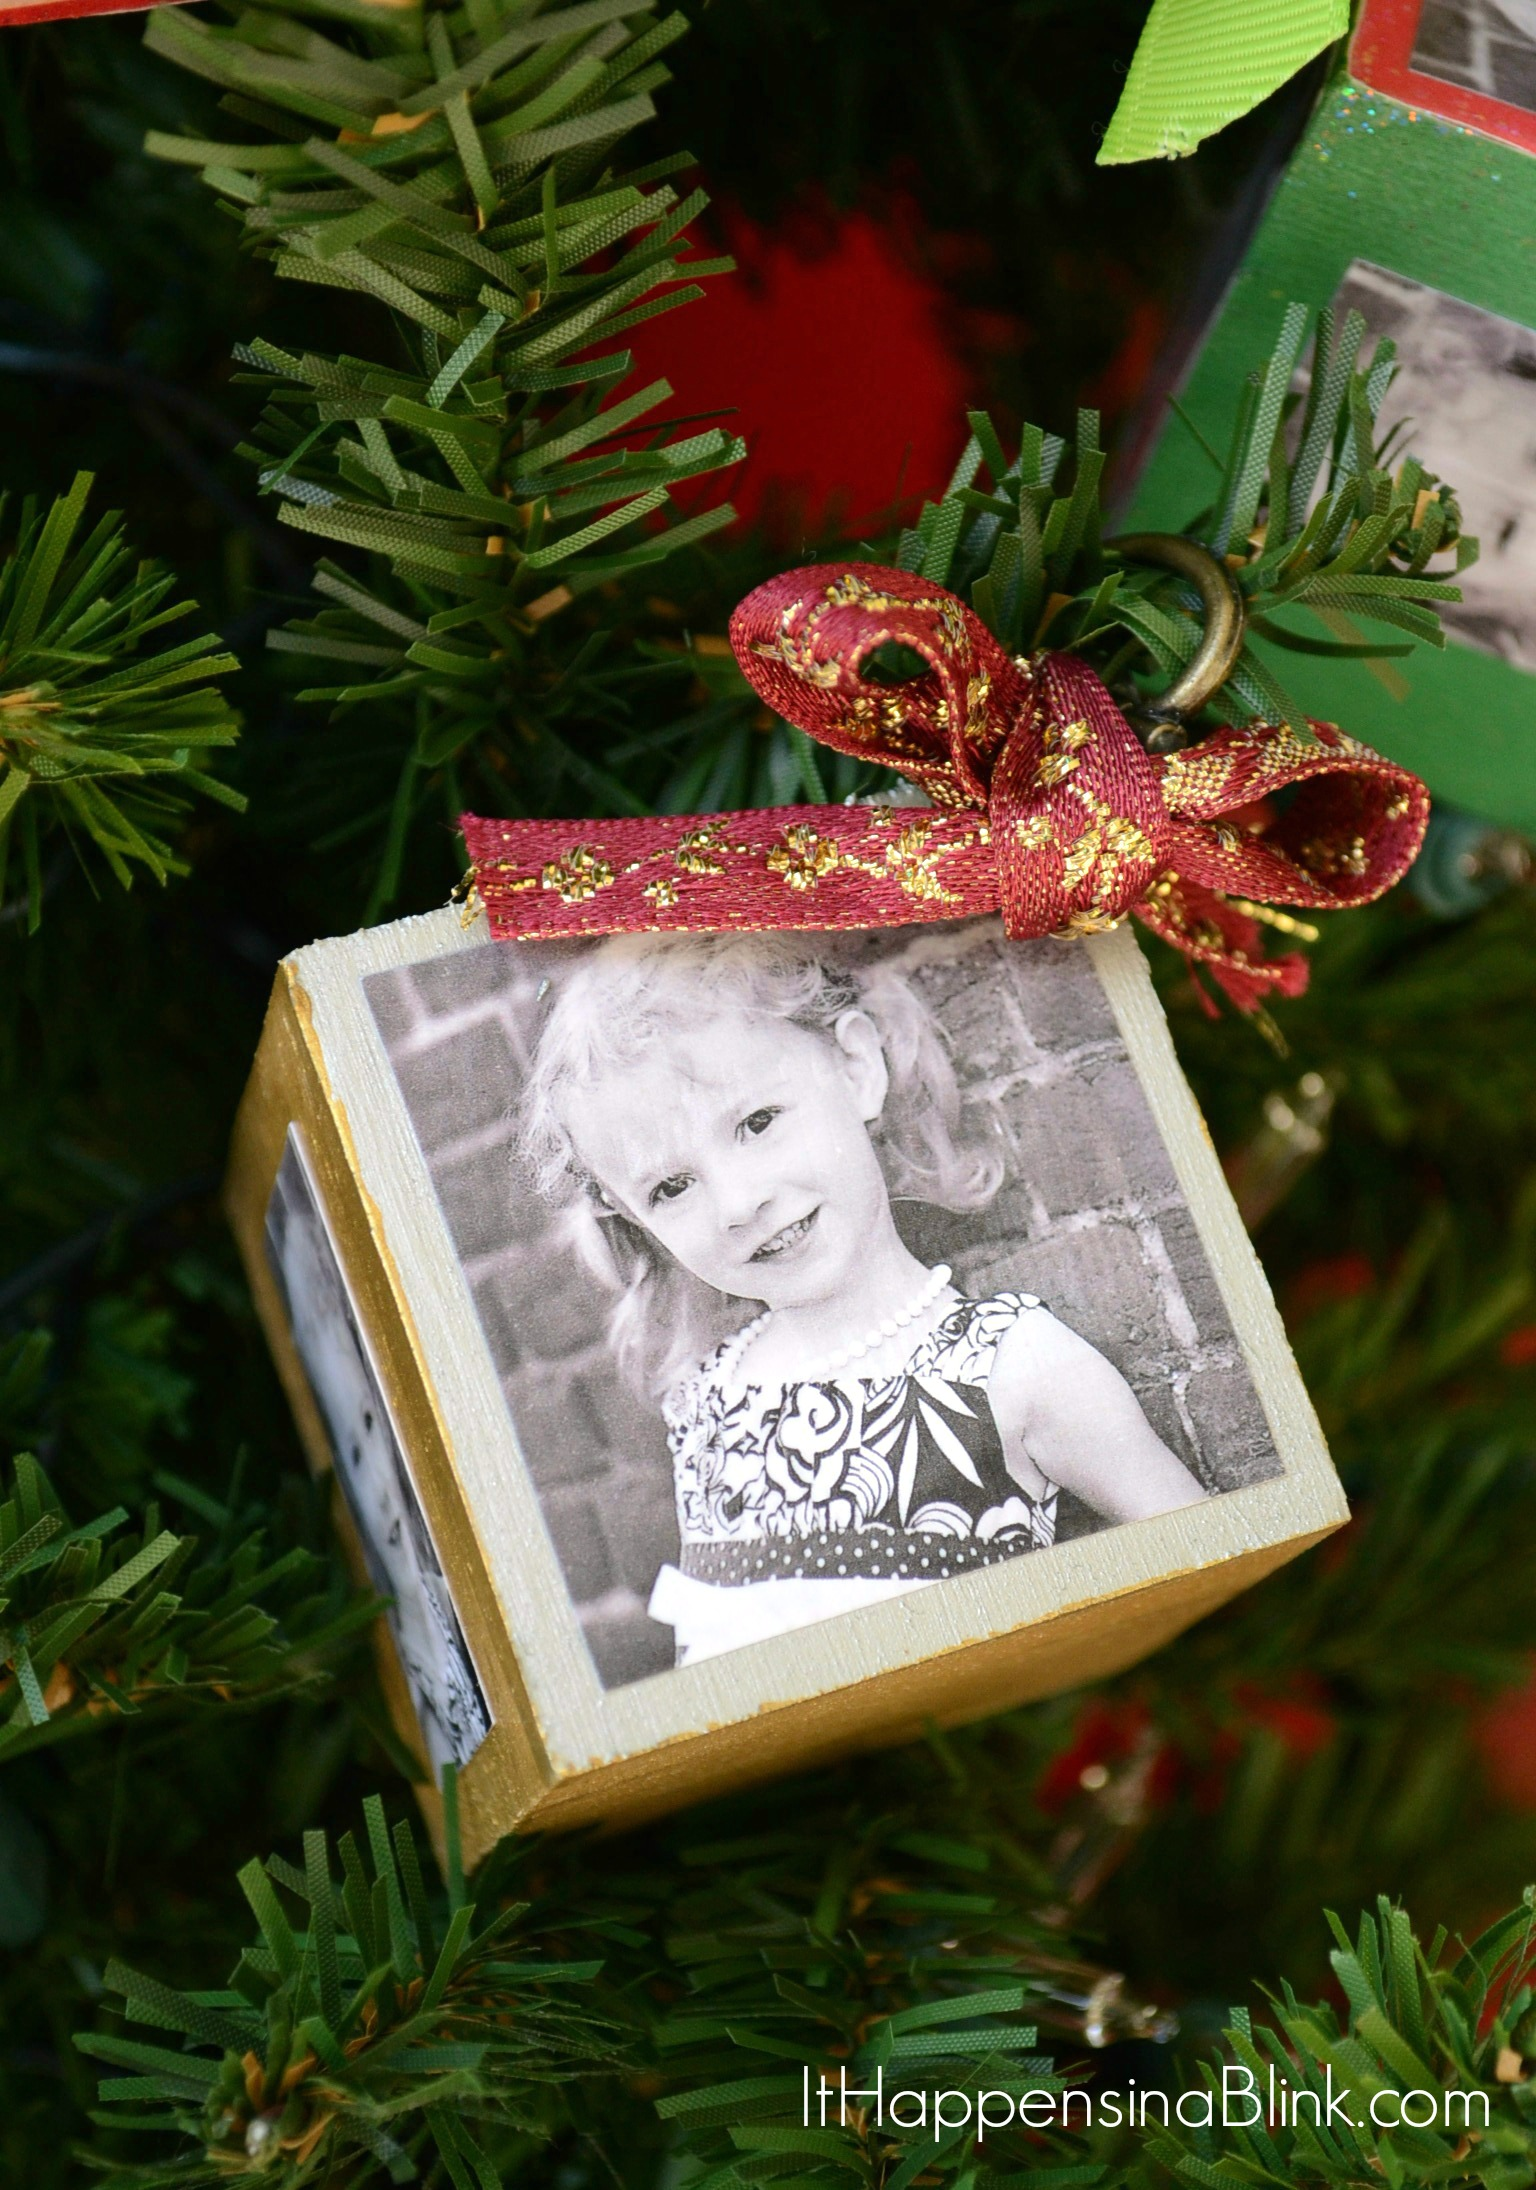 DIY Photo Block Christmas Ornaments | ItHappensinaBlink.com | Make your own photo block ornaments & DIY Photo Block Ornaments